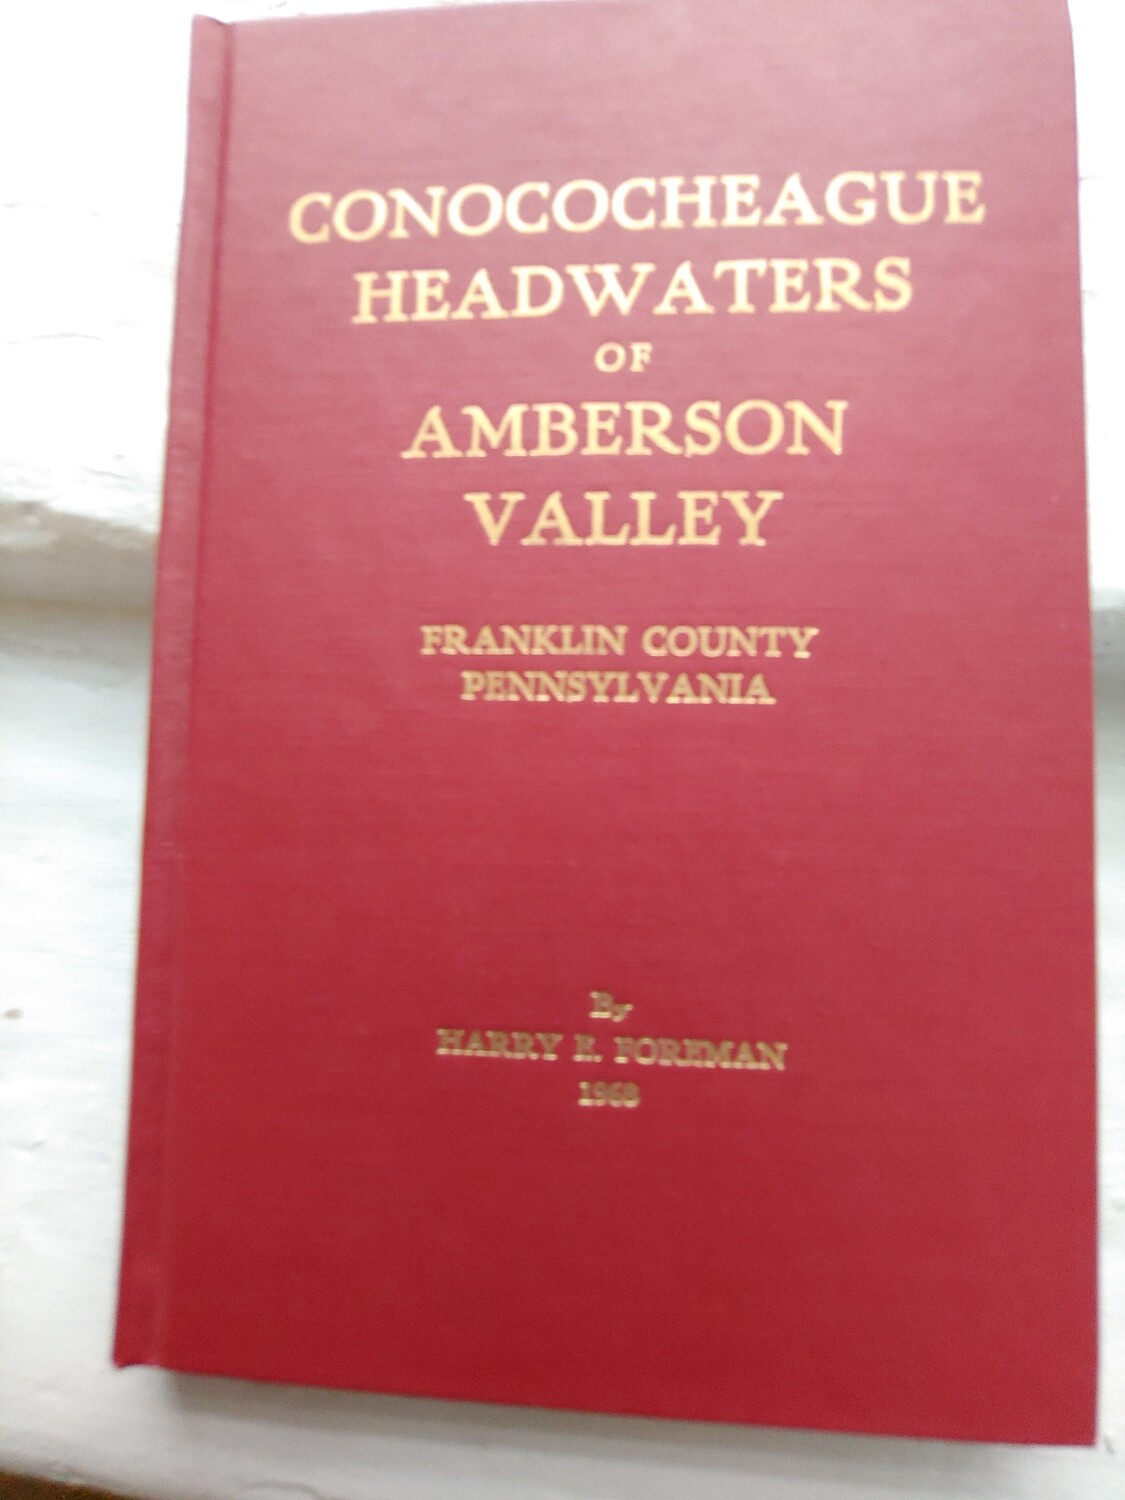 Conococheague Headwaters of Amberson Valley